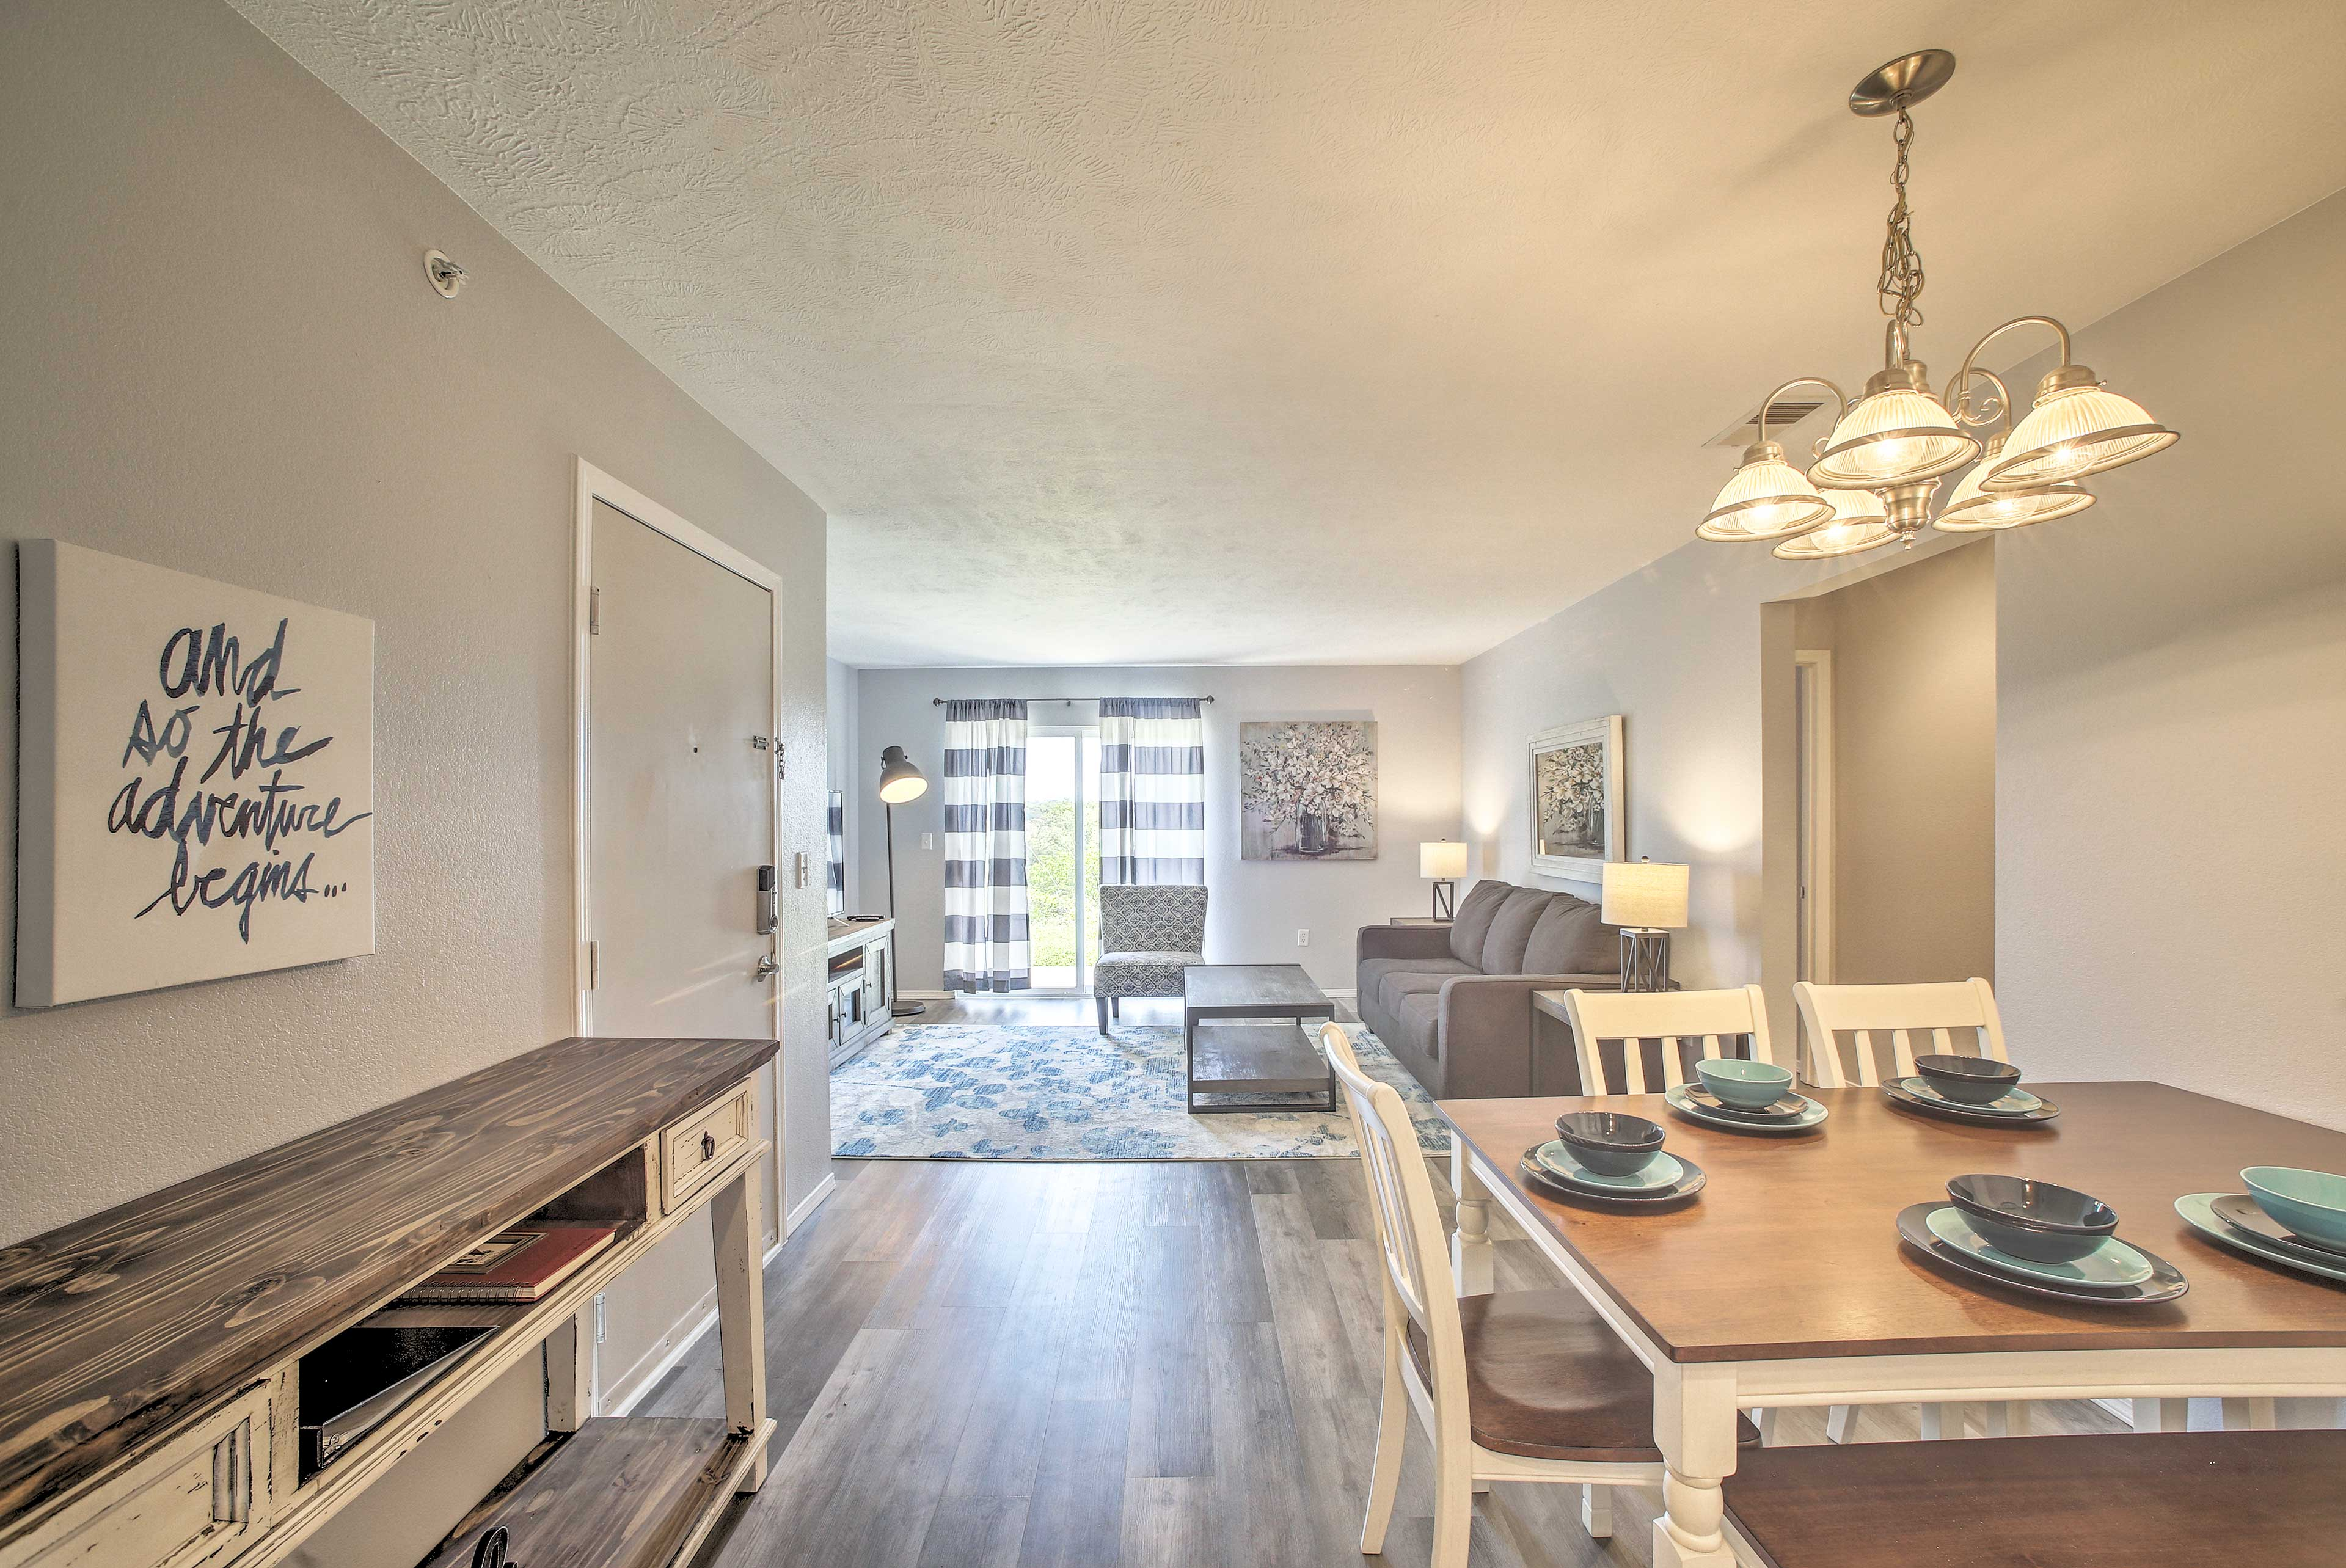 An open layout connects the kitchen, living and dining spaces.